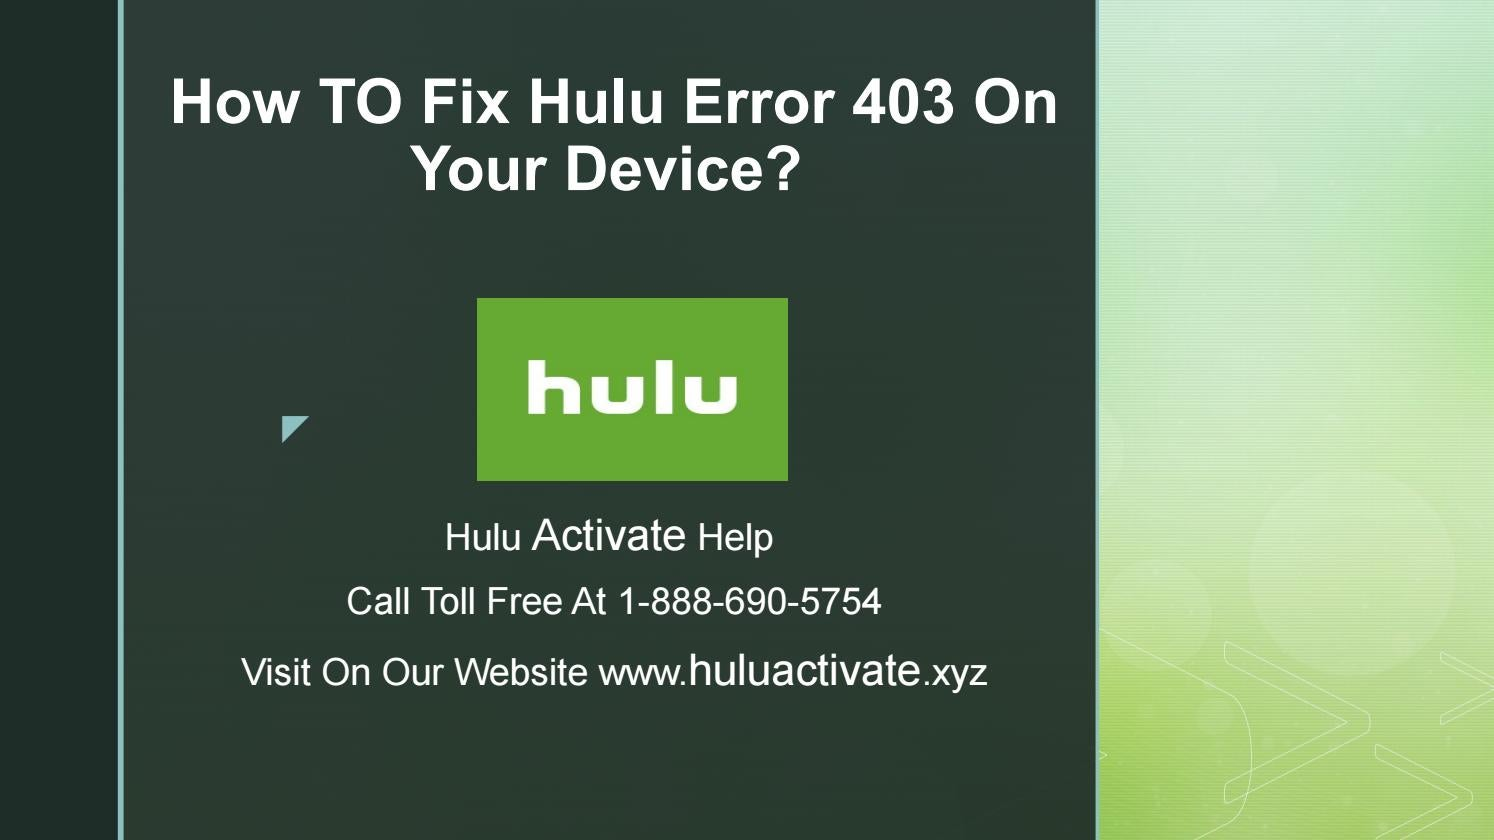 How to fix hulu error 403 on your device? by Hulu Activate - issuu